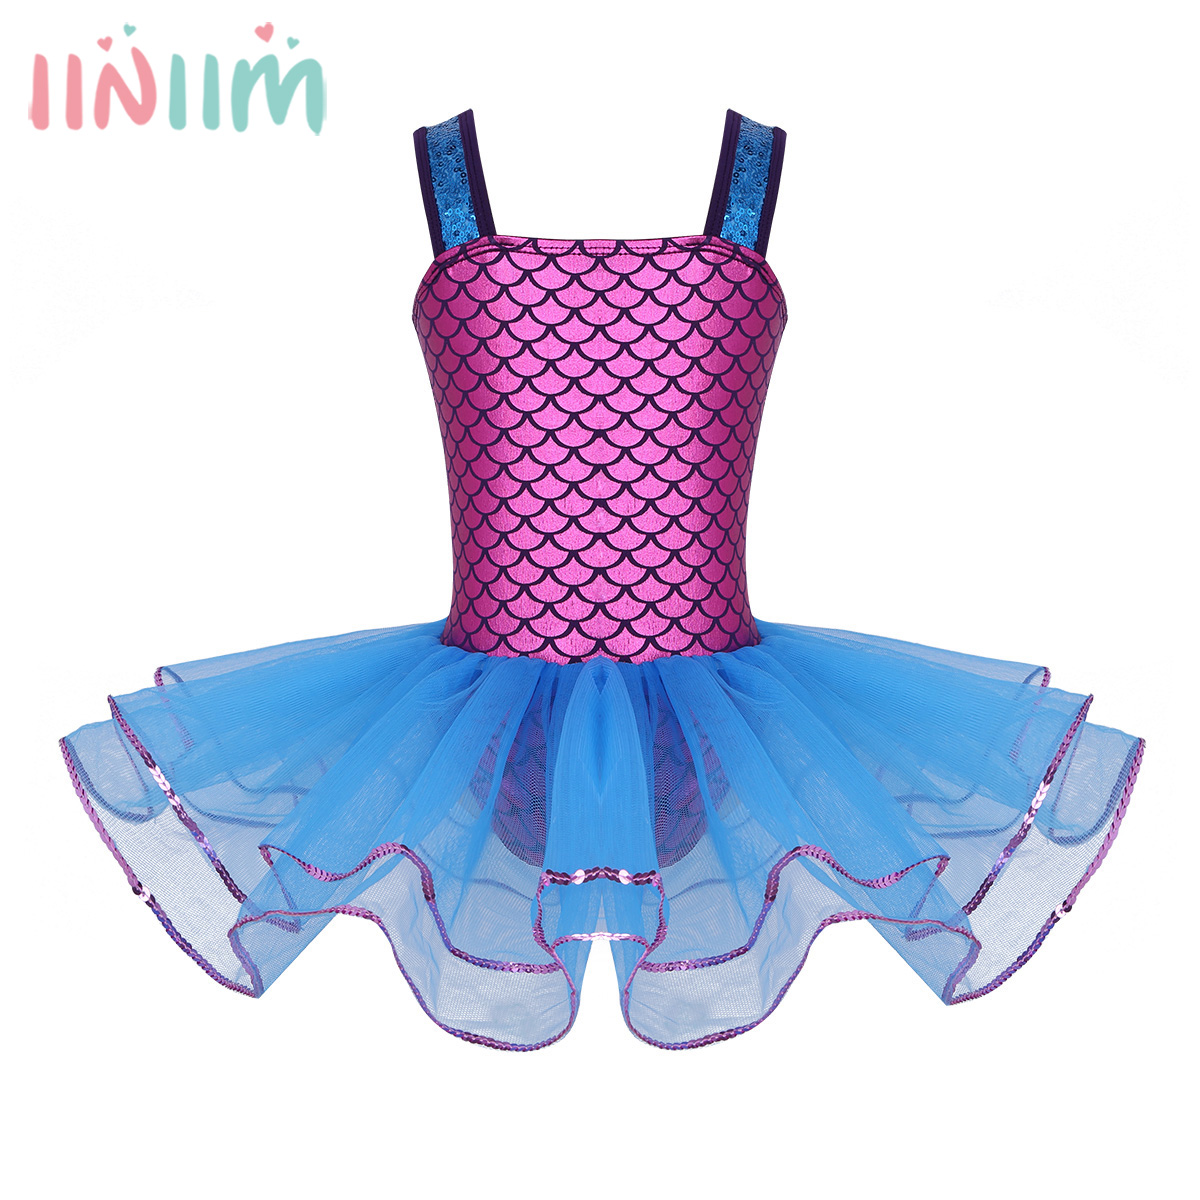 4c526b0f32 Detail Feedback Questions about iiniim Girls Mermaid Sequins Wide Shoulder  Straps Ball Gown Performance Ballet Tutu Dancing Dresses Gymnastics Leotard  Dress ...